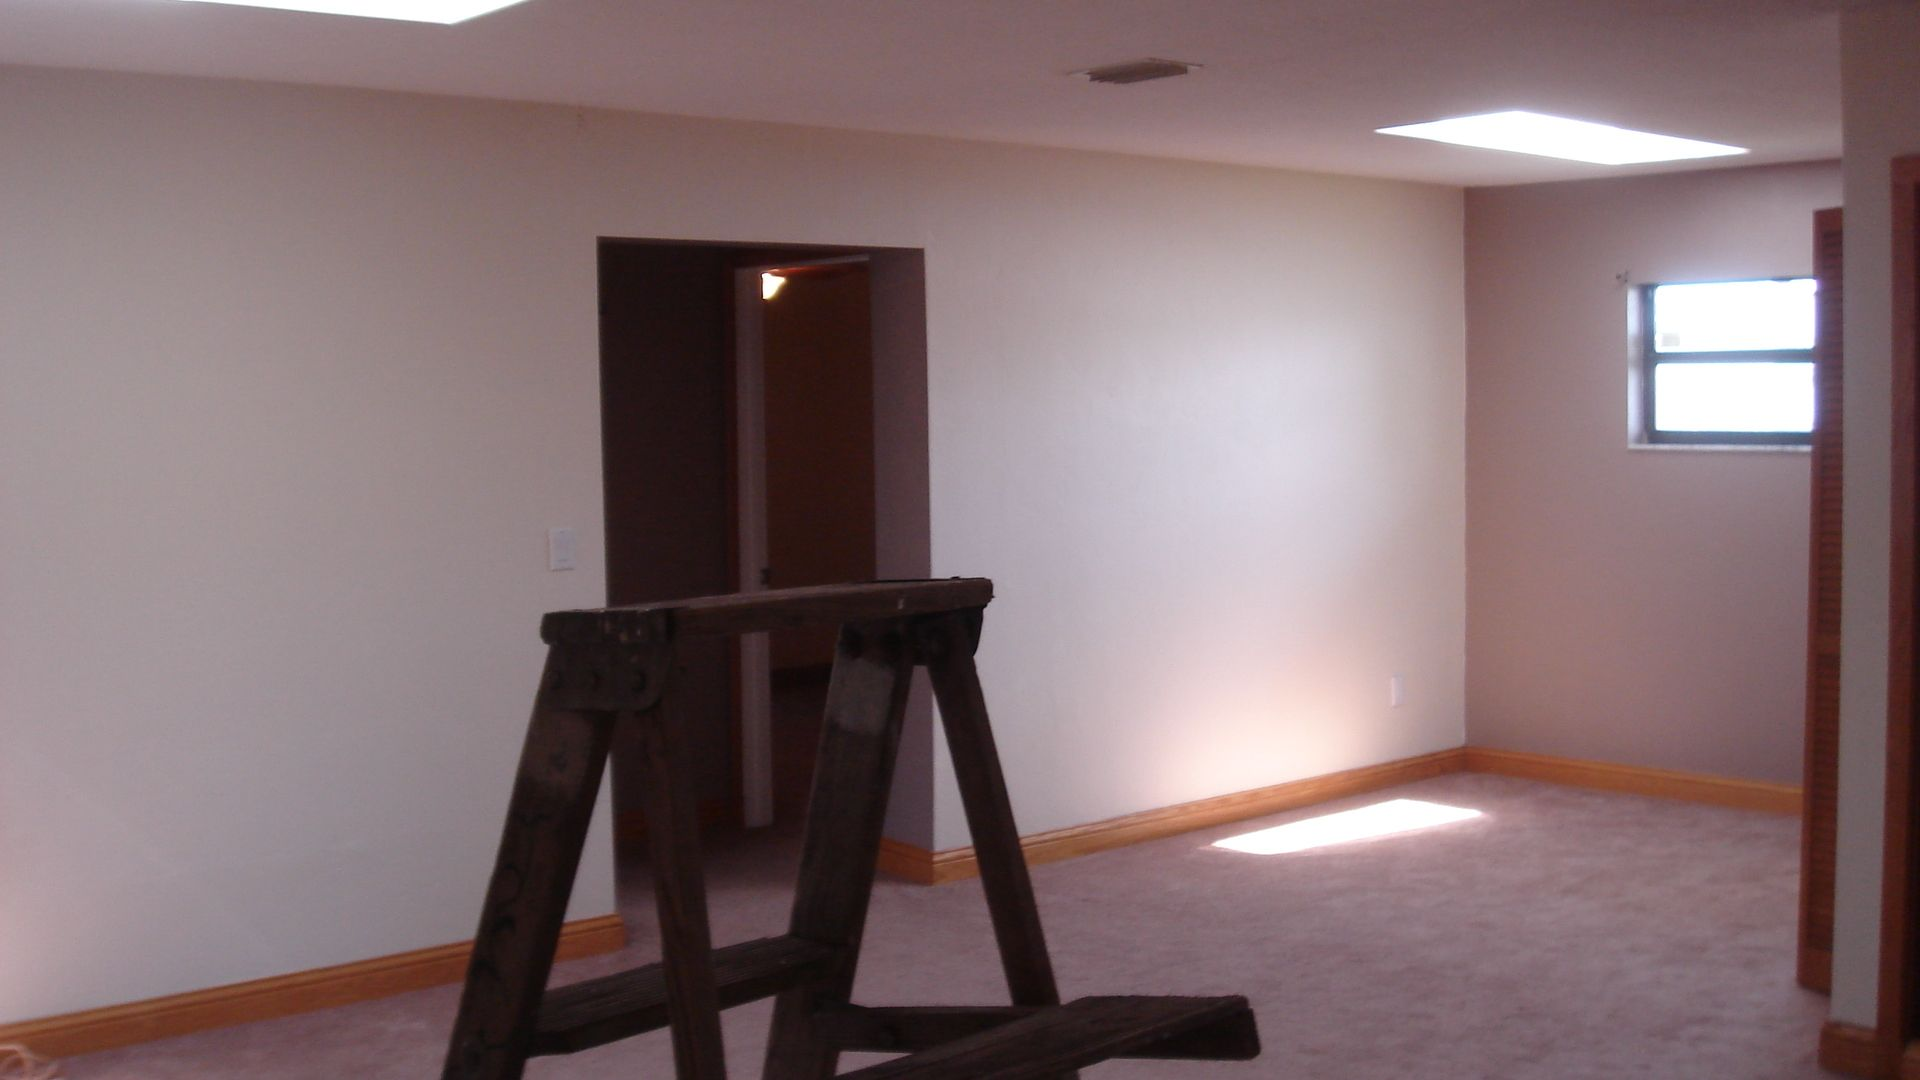 Family room area with carpet prior to remodeling